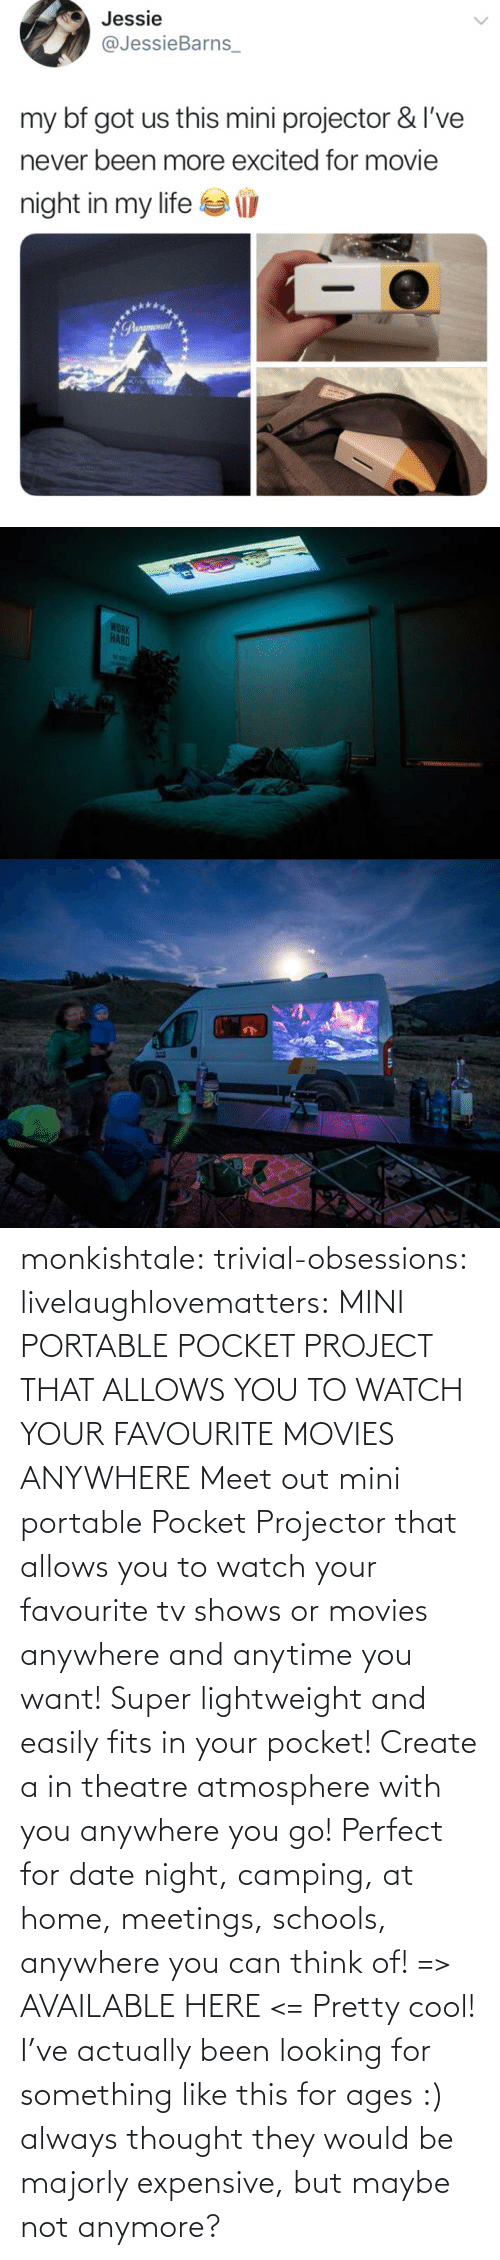 always: monkishtale: trivial-obsessions:   livelaughlovematters:   MINI PORTABLE POCKET PROJECT THAT ALLOWS YOU TO WATCH YOUR FAVOURITE MOVIES ANYWHERE Meet out mini portable Pocket Projector that allows you to watch your favourite tv shows or movies anywhere and anytime you want! Super lightweight and easily fits in your pocket! Create a in theatre atmosphere with you anywhere you go! Perfect for date night, camping, at home, meetings, schools, anywhere you can think of! => AVAILABLE HERE <=    Pretty cool!    I've actually been looking for something like this for ages :) always thought they would be majorly expensive, but maybe not anymore?